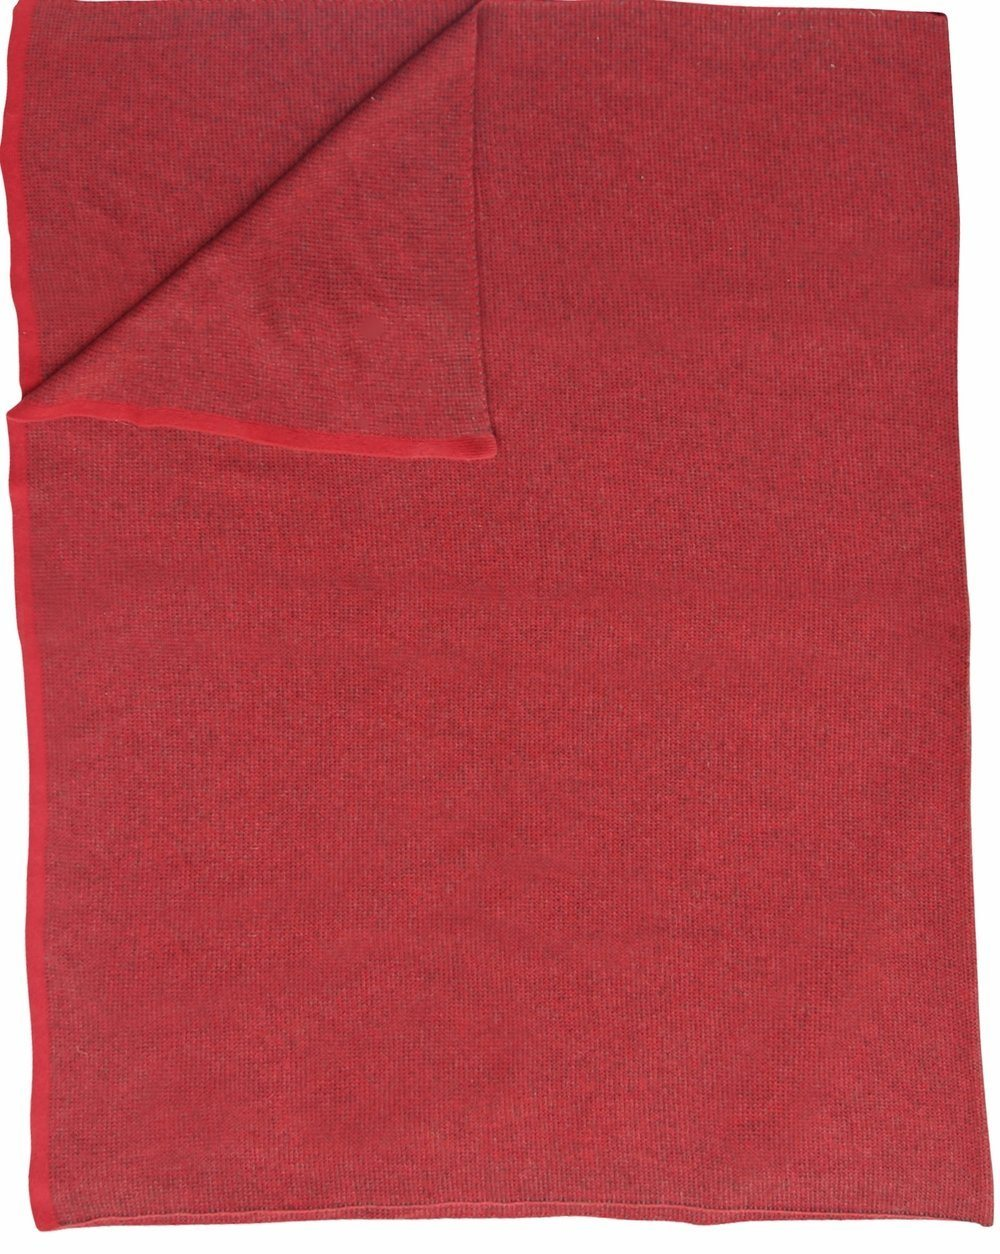 Saved New York Moss merlot Throw Folded - Fig Linens